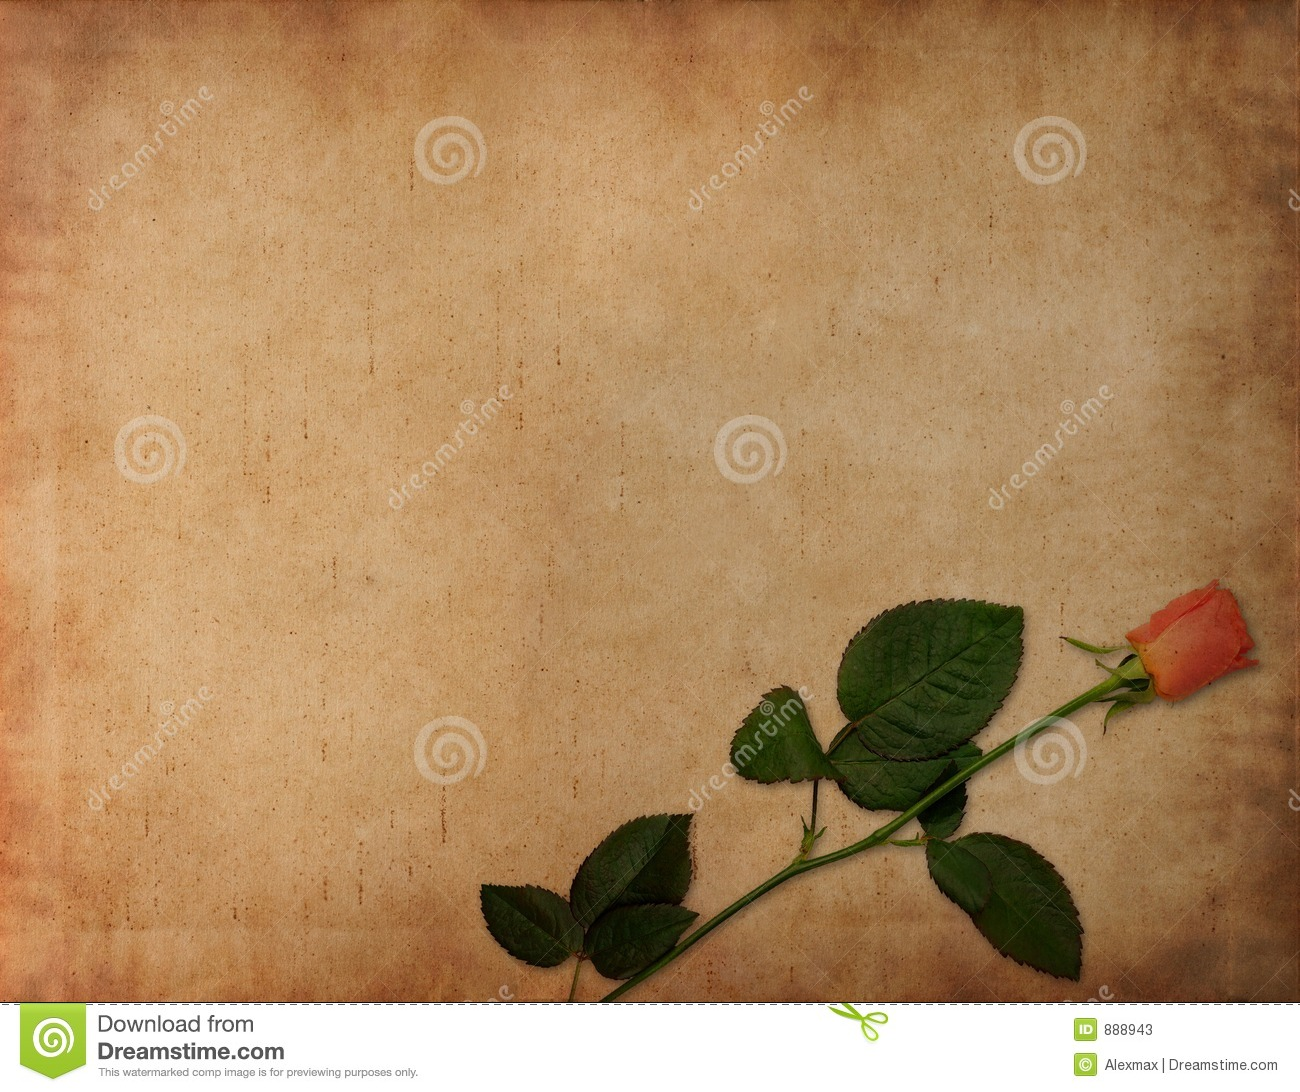 Love Letter Wallpaper Design : Ancient Love Letter Background Stock Photos - Image: 888943